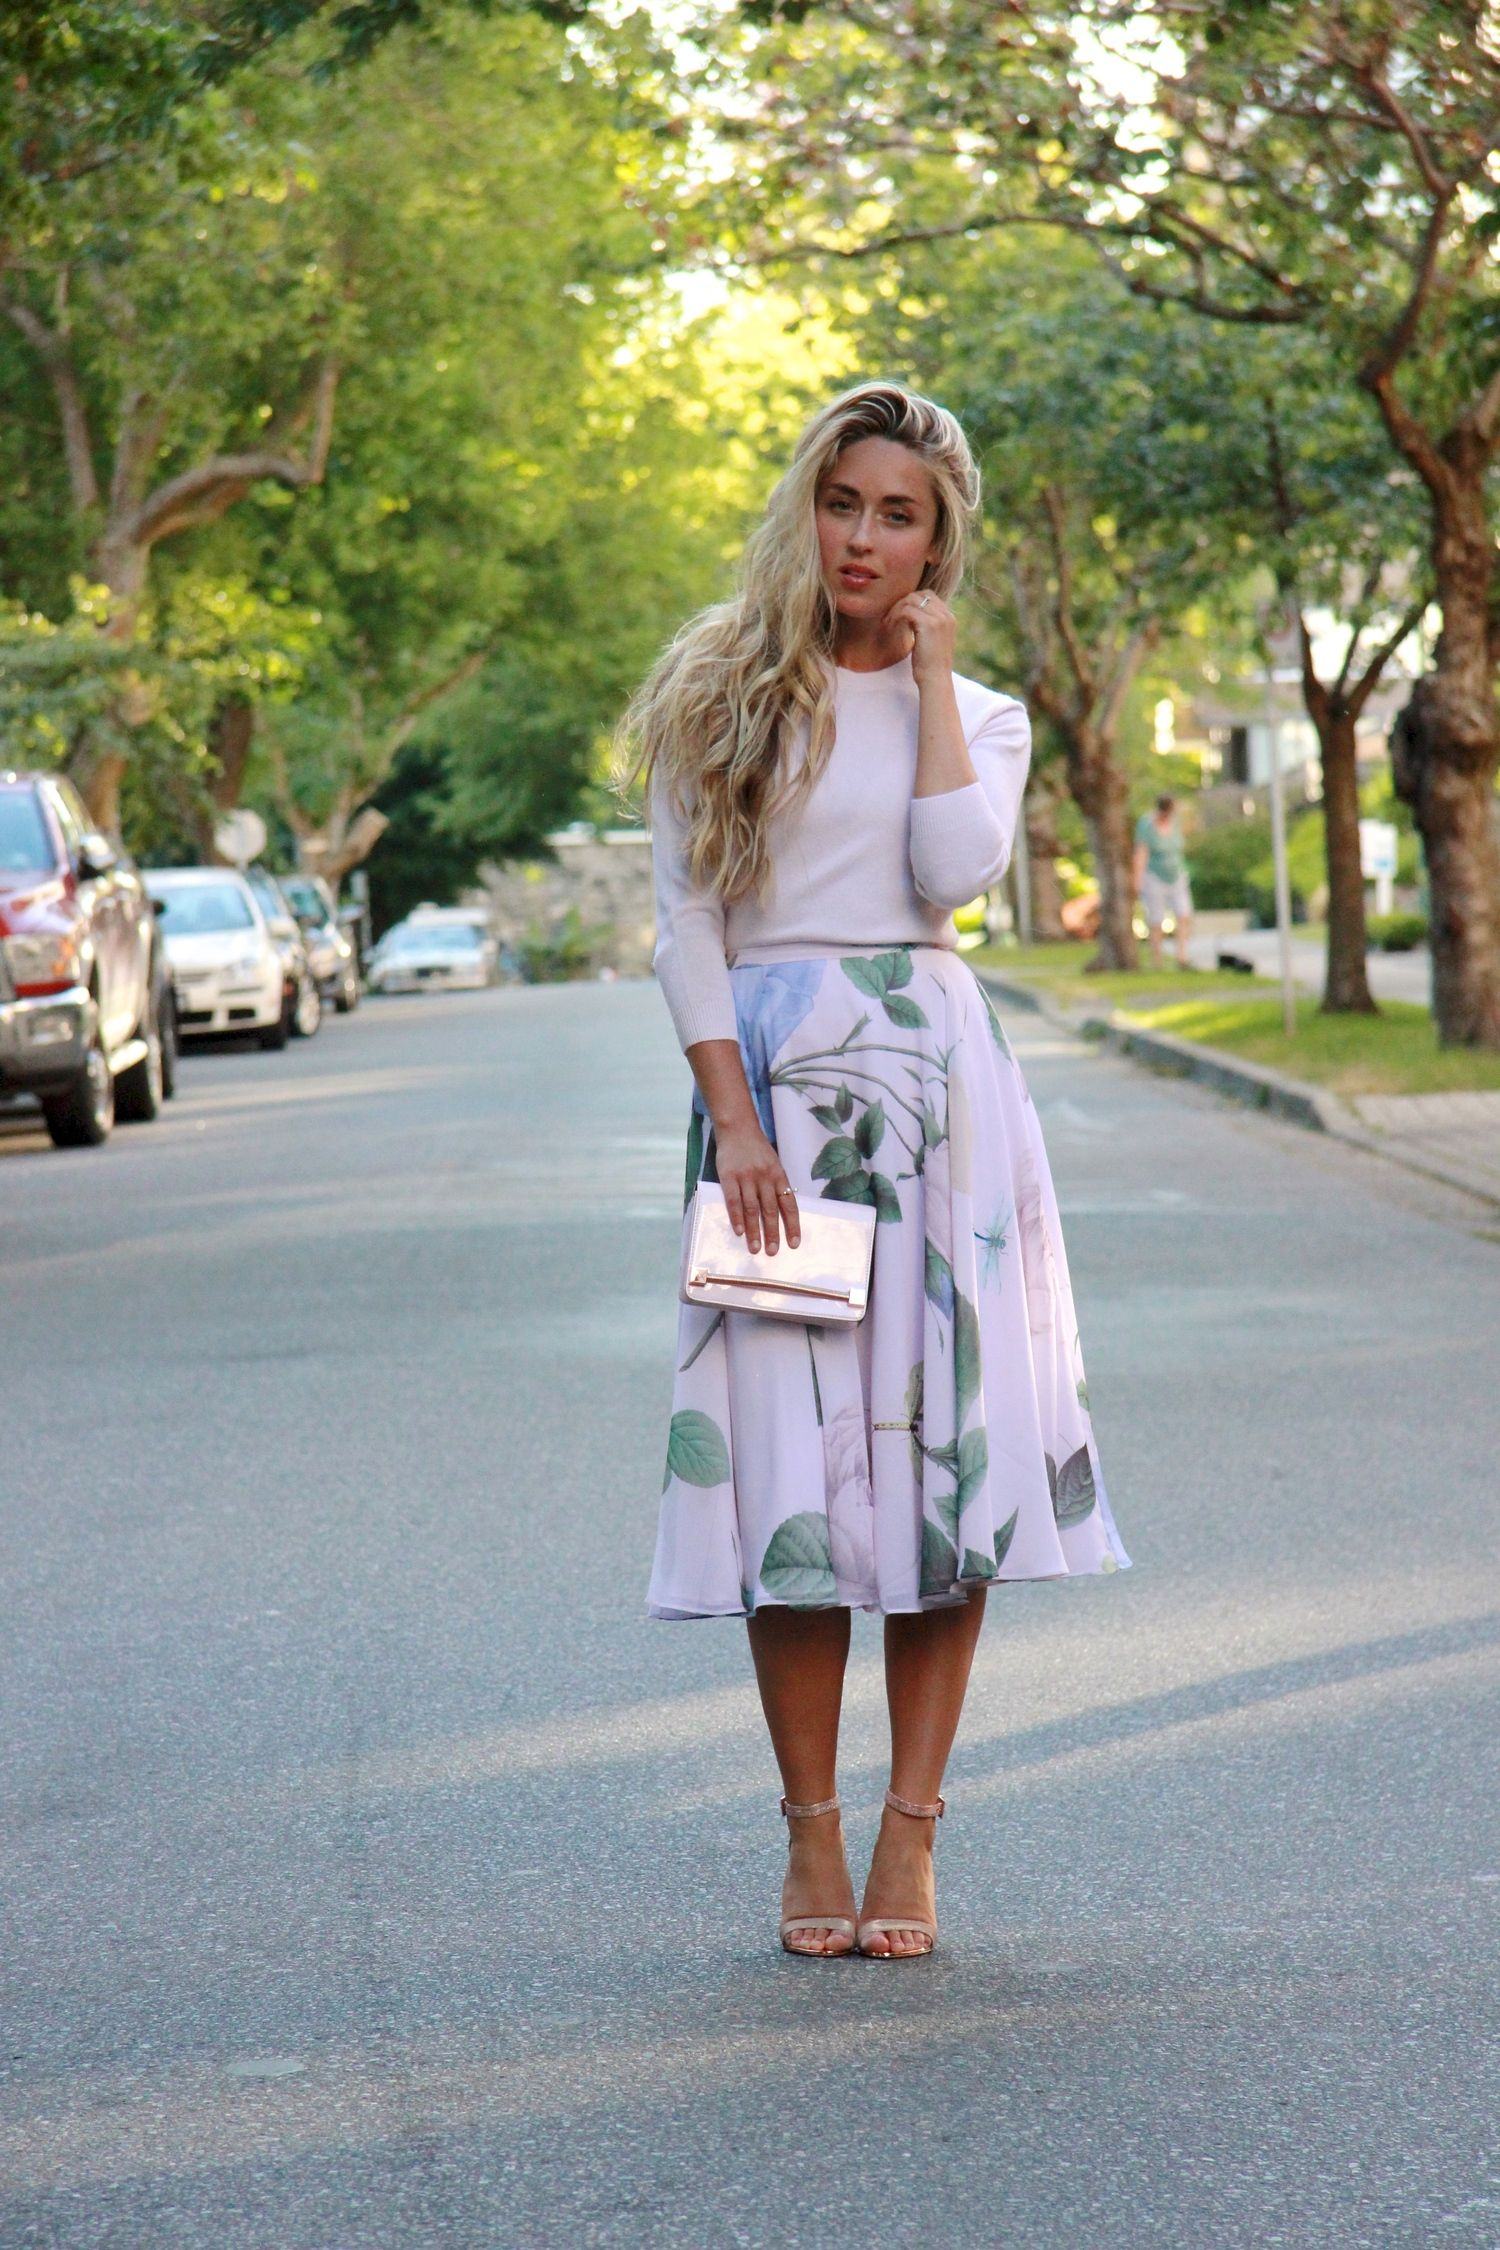 Ted Baker Sweater Skirt Clutch Amp Heels I Always Made Sure To Pop In Ted Baker On My Travels Guest Attire Summer Wedding Outfits Wedding Attire Guest [ 2250 x 1500 Pixel ]